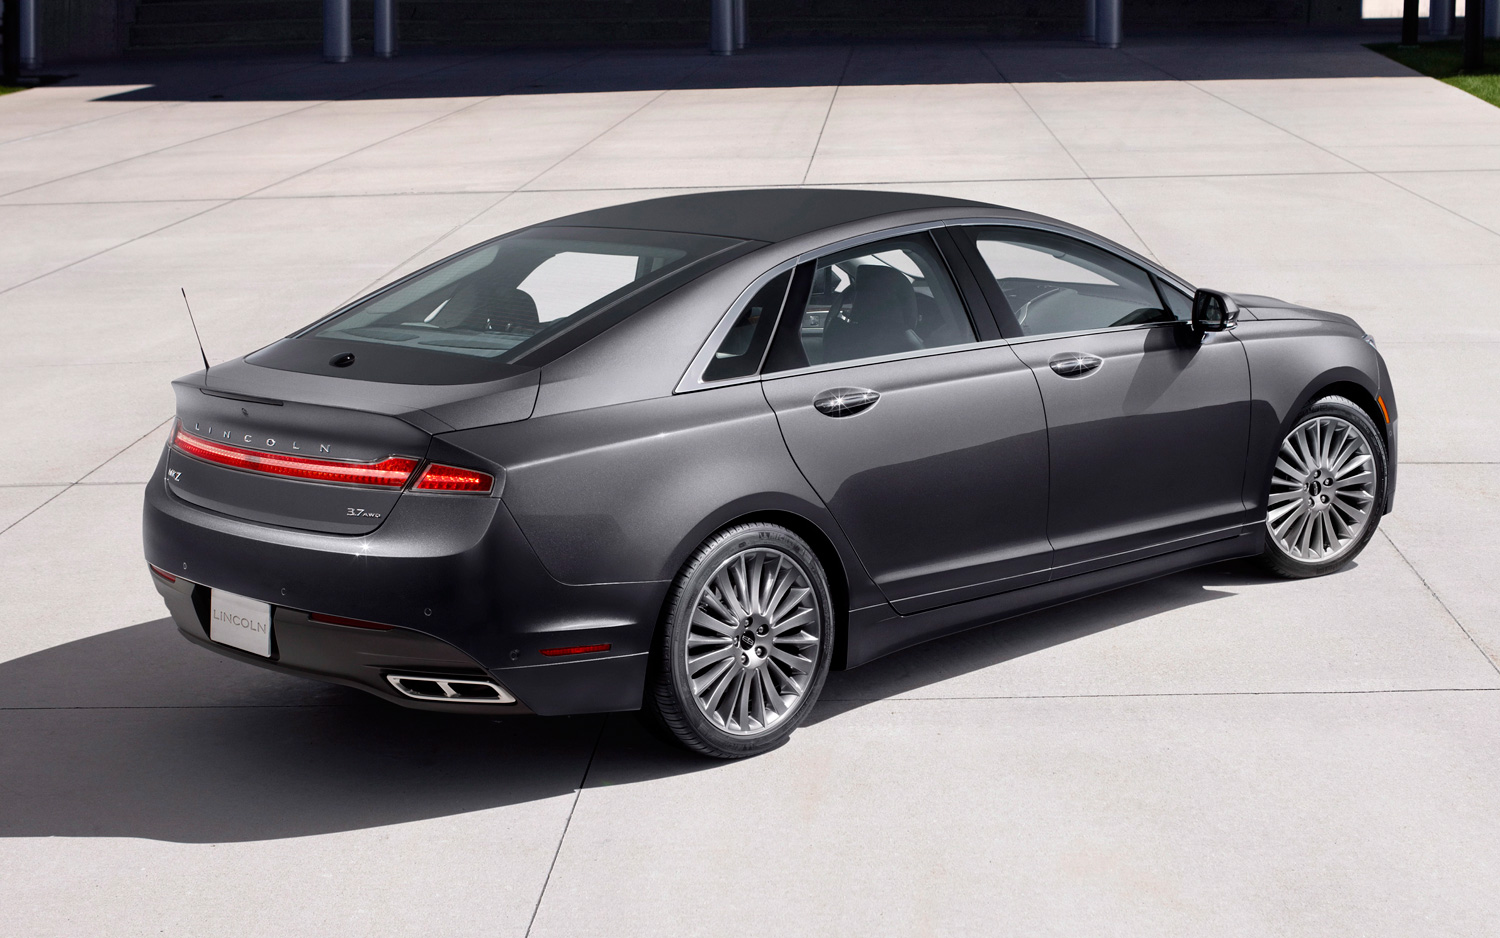 Lincoln Mkz #6